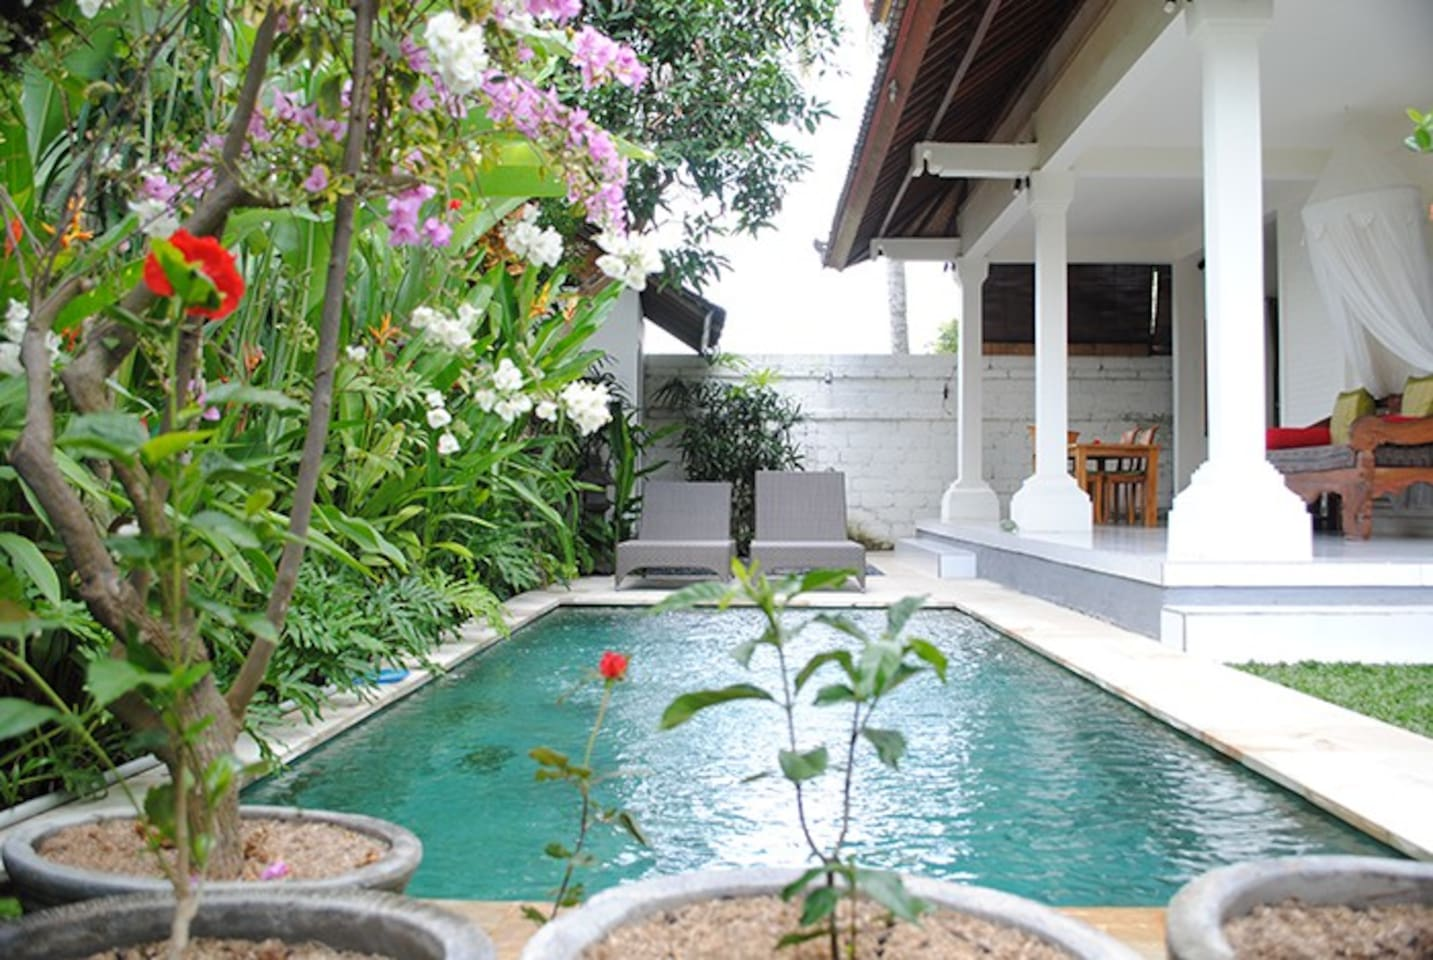 Everywhere looks onto this inviting pool